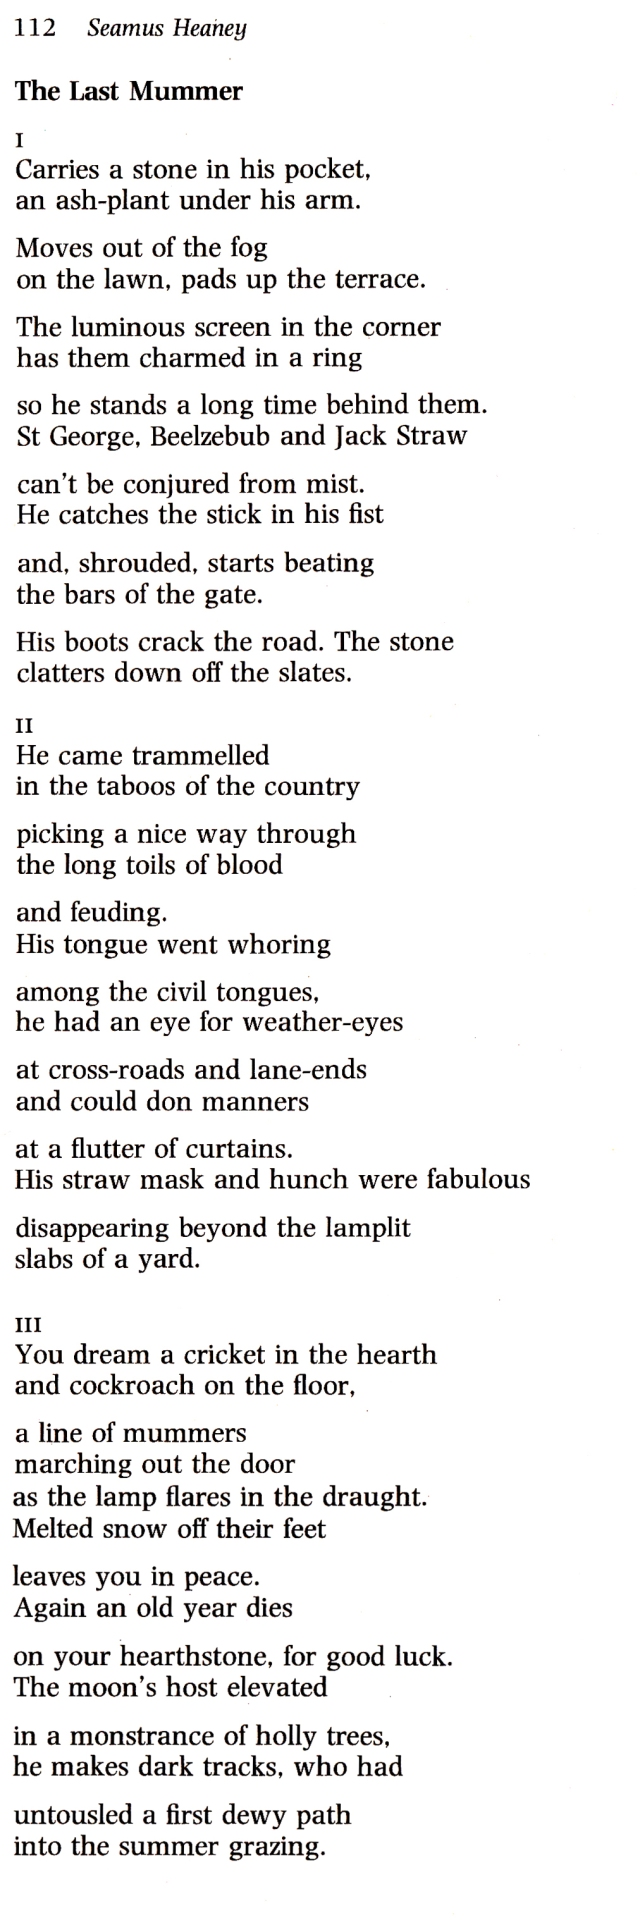 seamus heaney, the last mummer